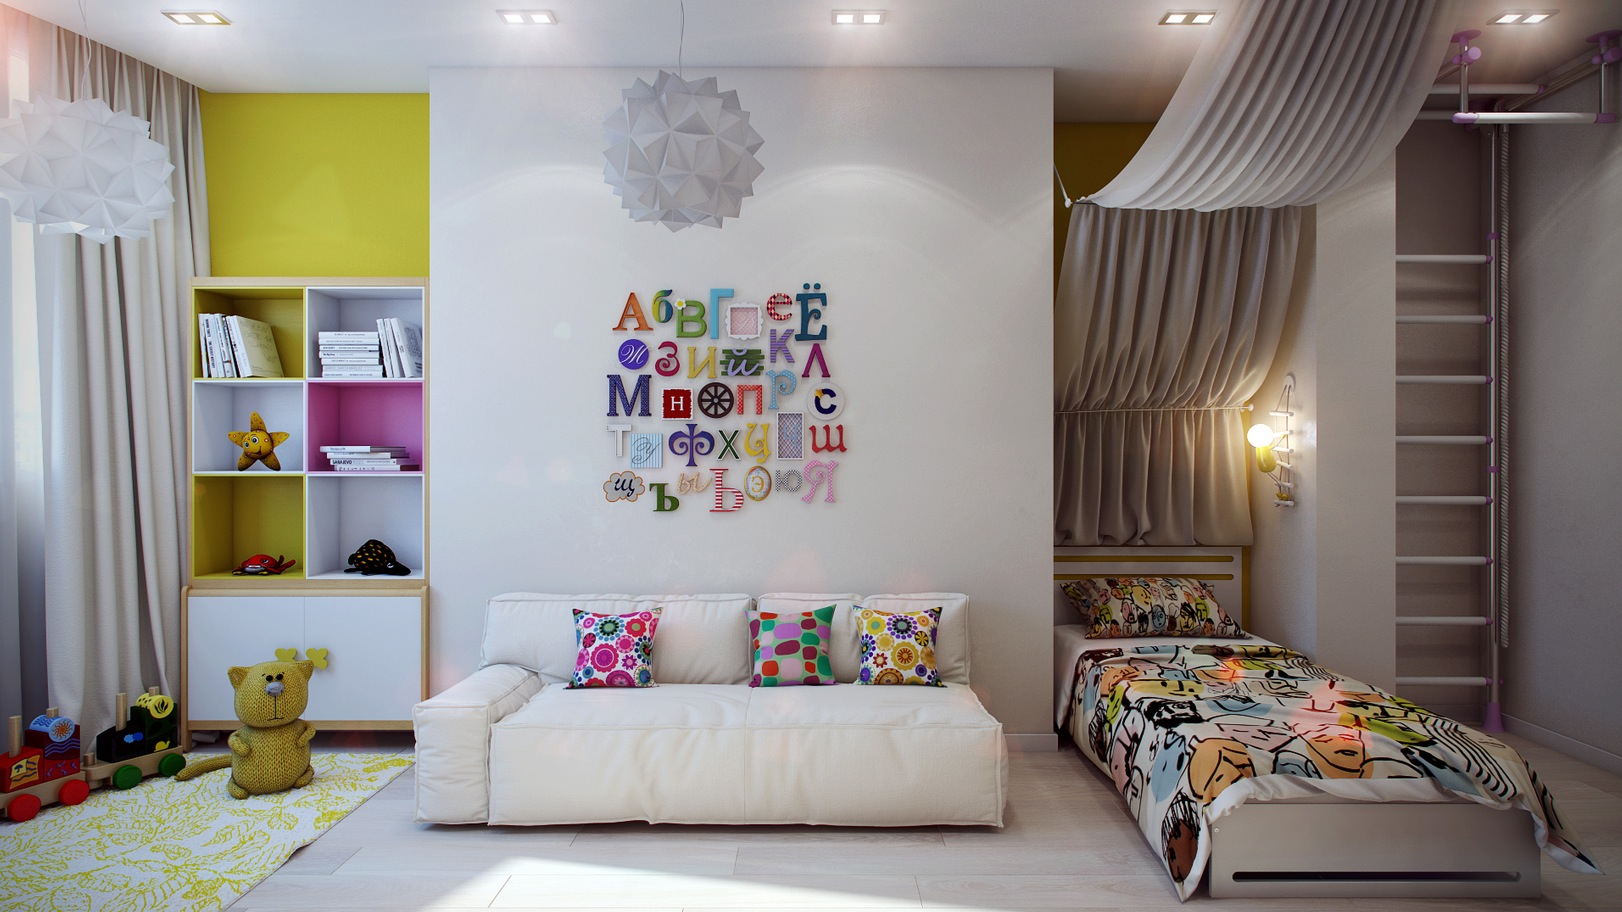 , accent cushions and wall art to make the statement, this is a room ...